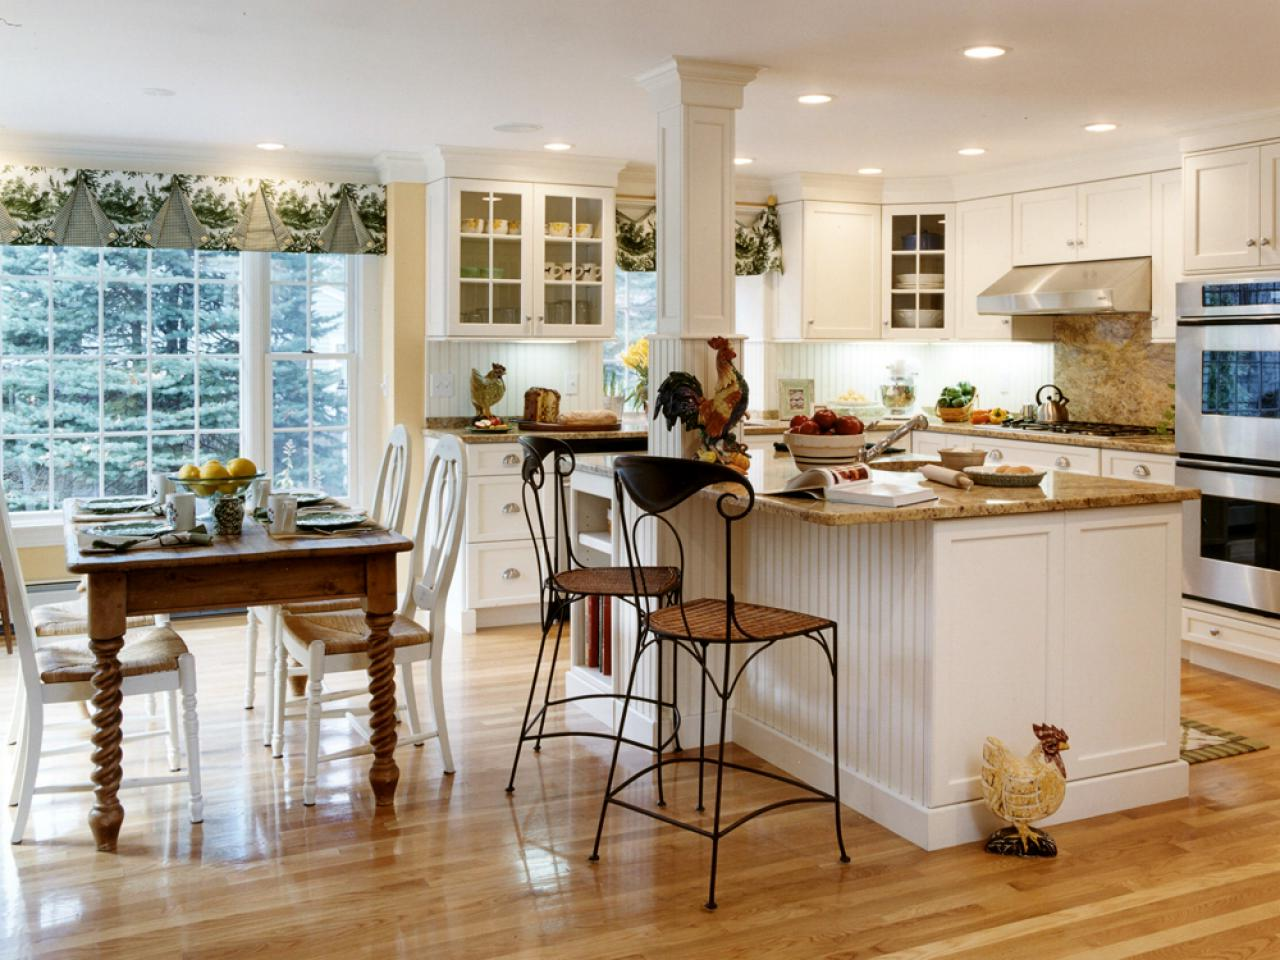 Kitchen design images - Kitchen in country style with wooden floors ...